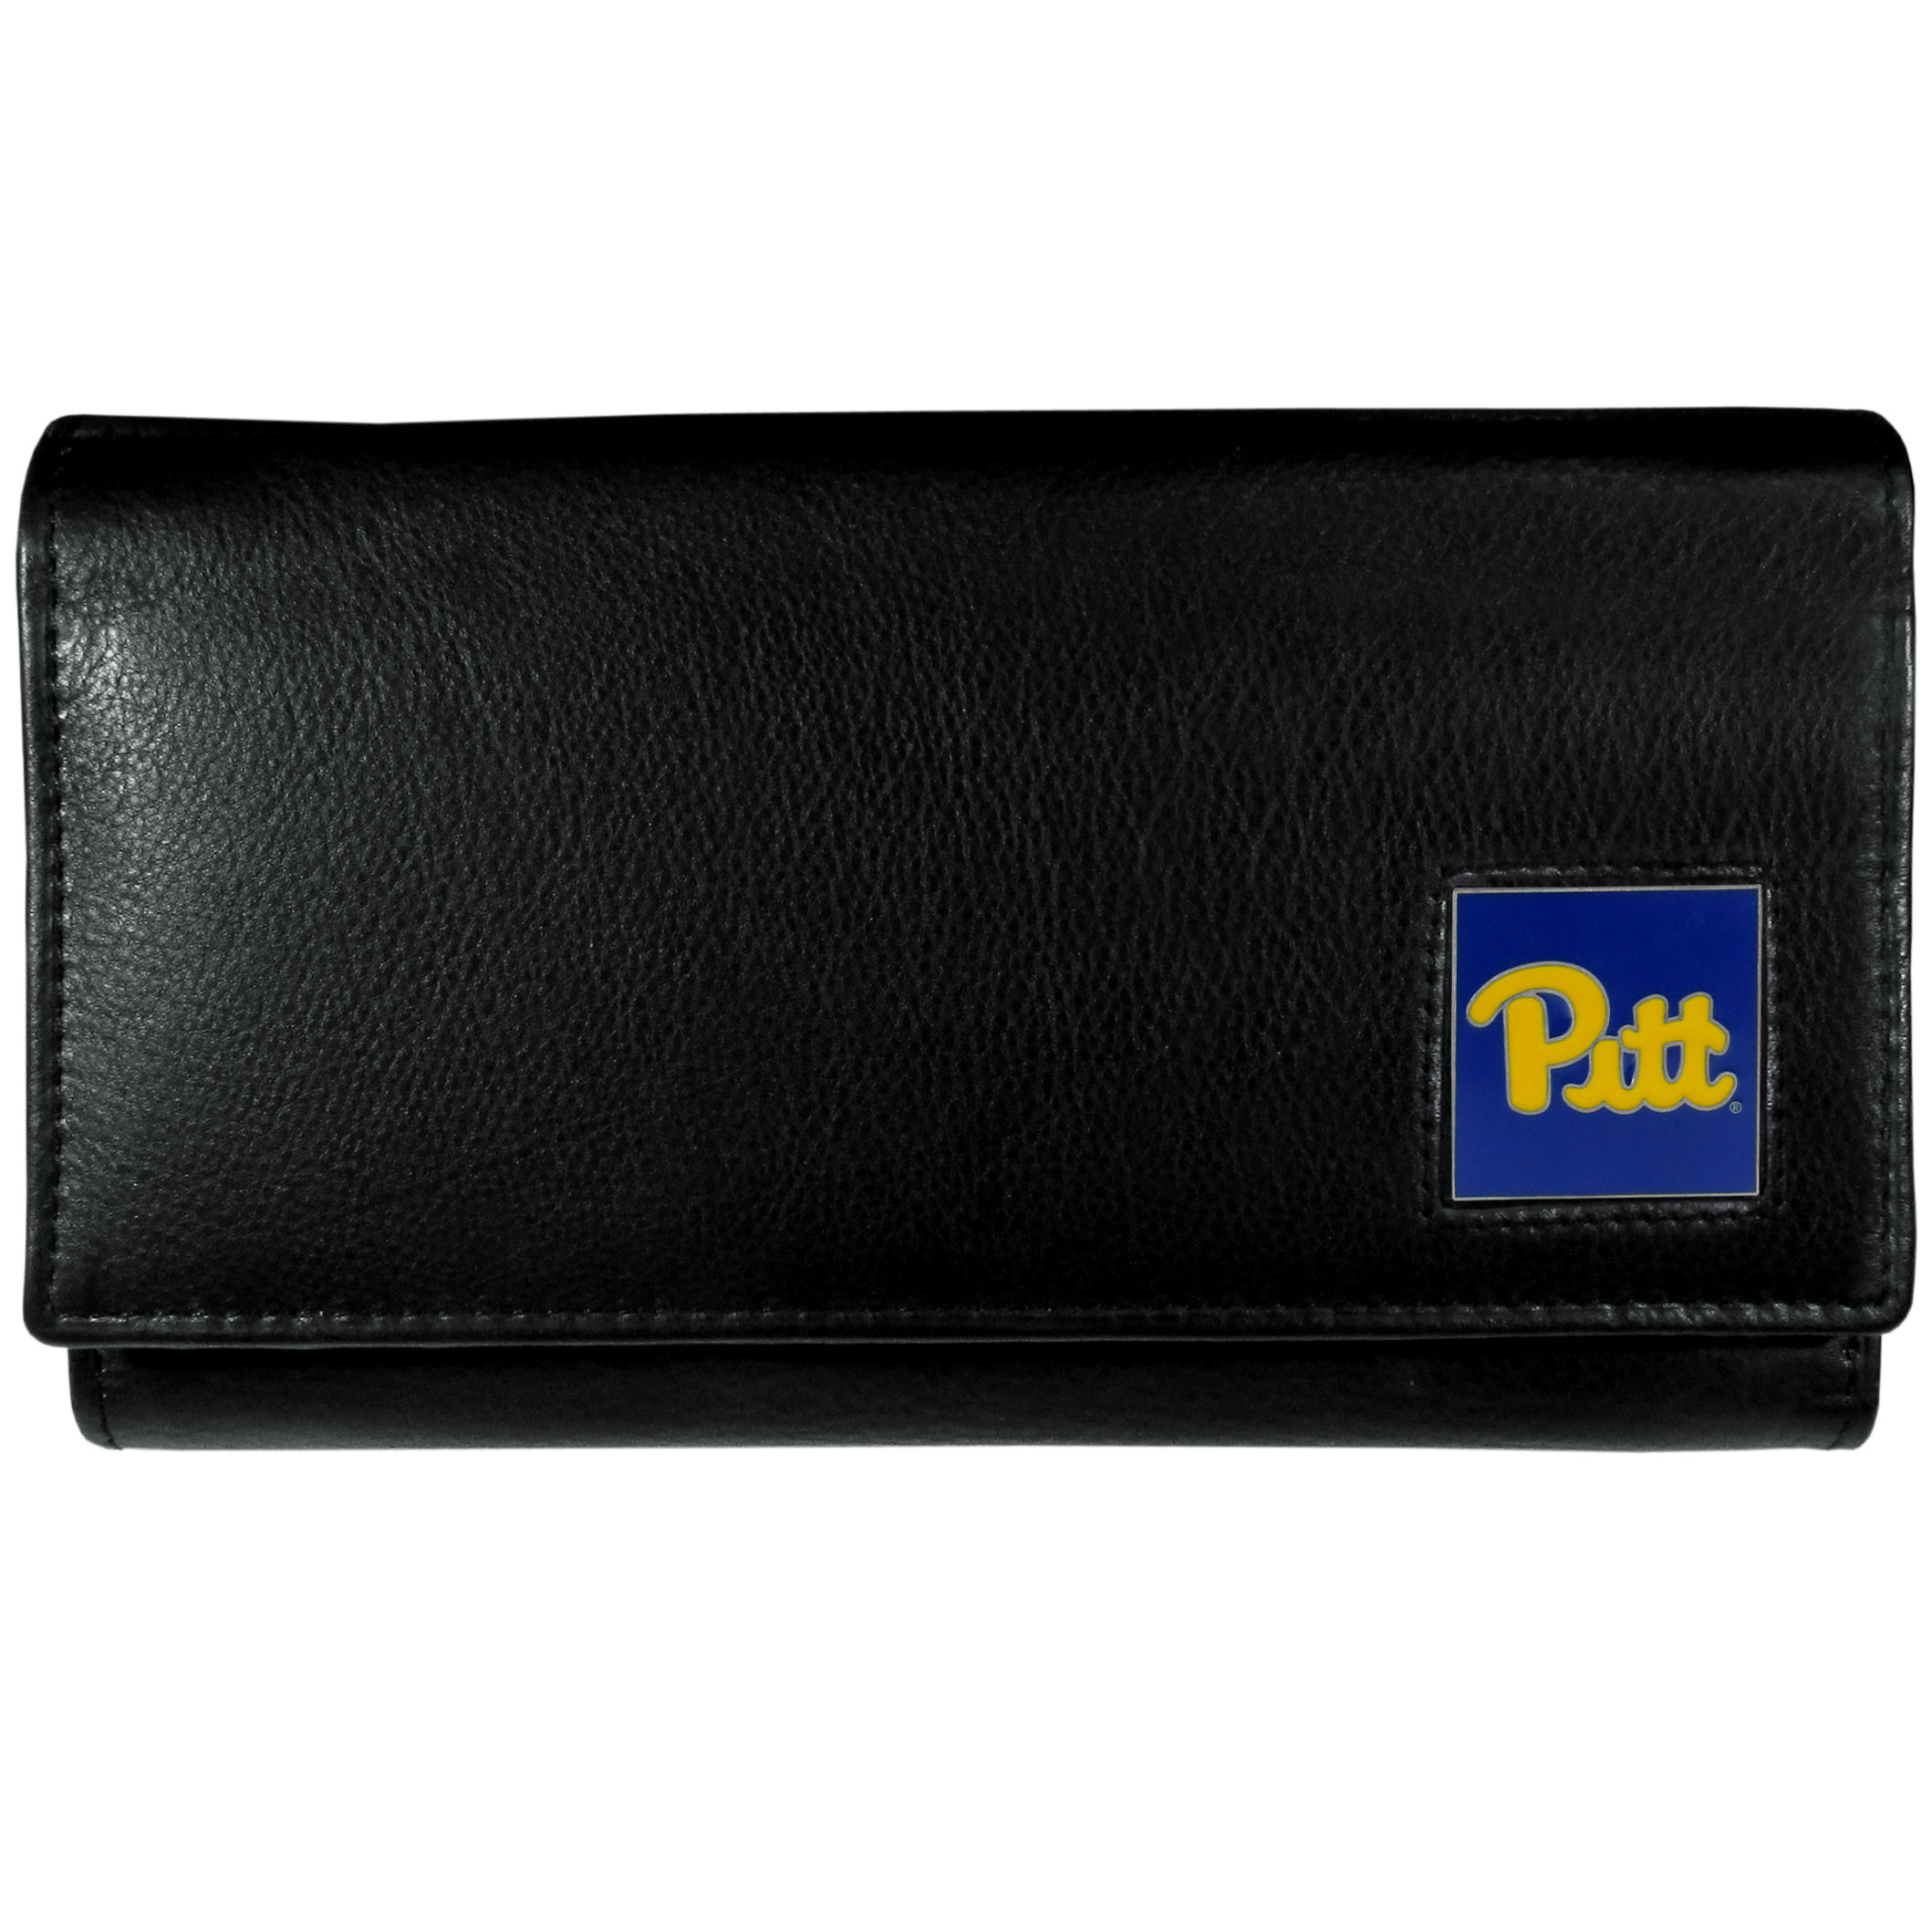 PITT Panthers Leather Women's Wallet - This genuine leather women's pocketbook features 9 credit card slots, a windowed ID slot, spacious front pocket, inner pocket and zippered coin pocket. The front of the pocketbook has a hand painted metal square with the PITT Panthers primary logo.